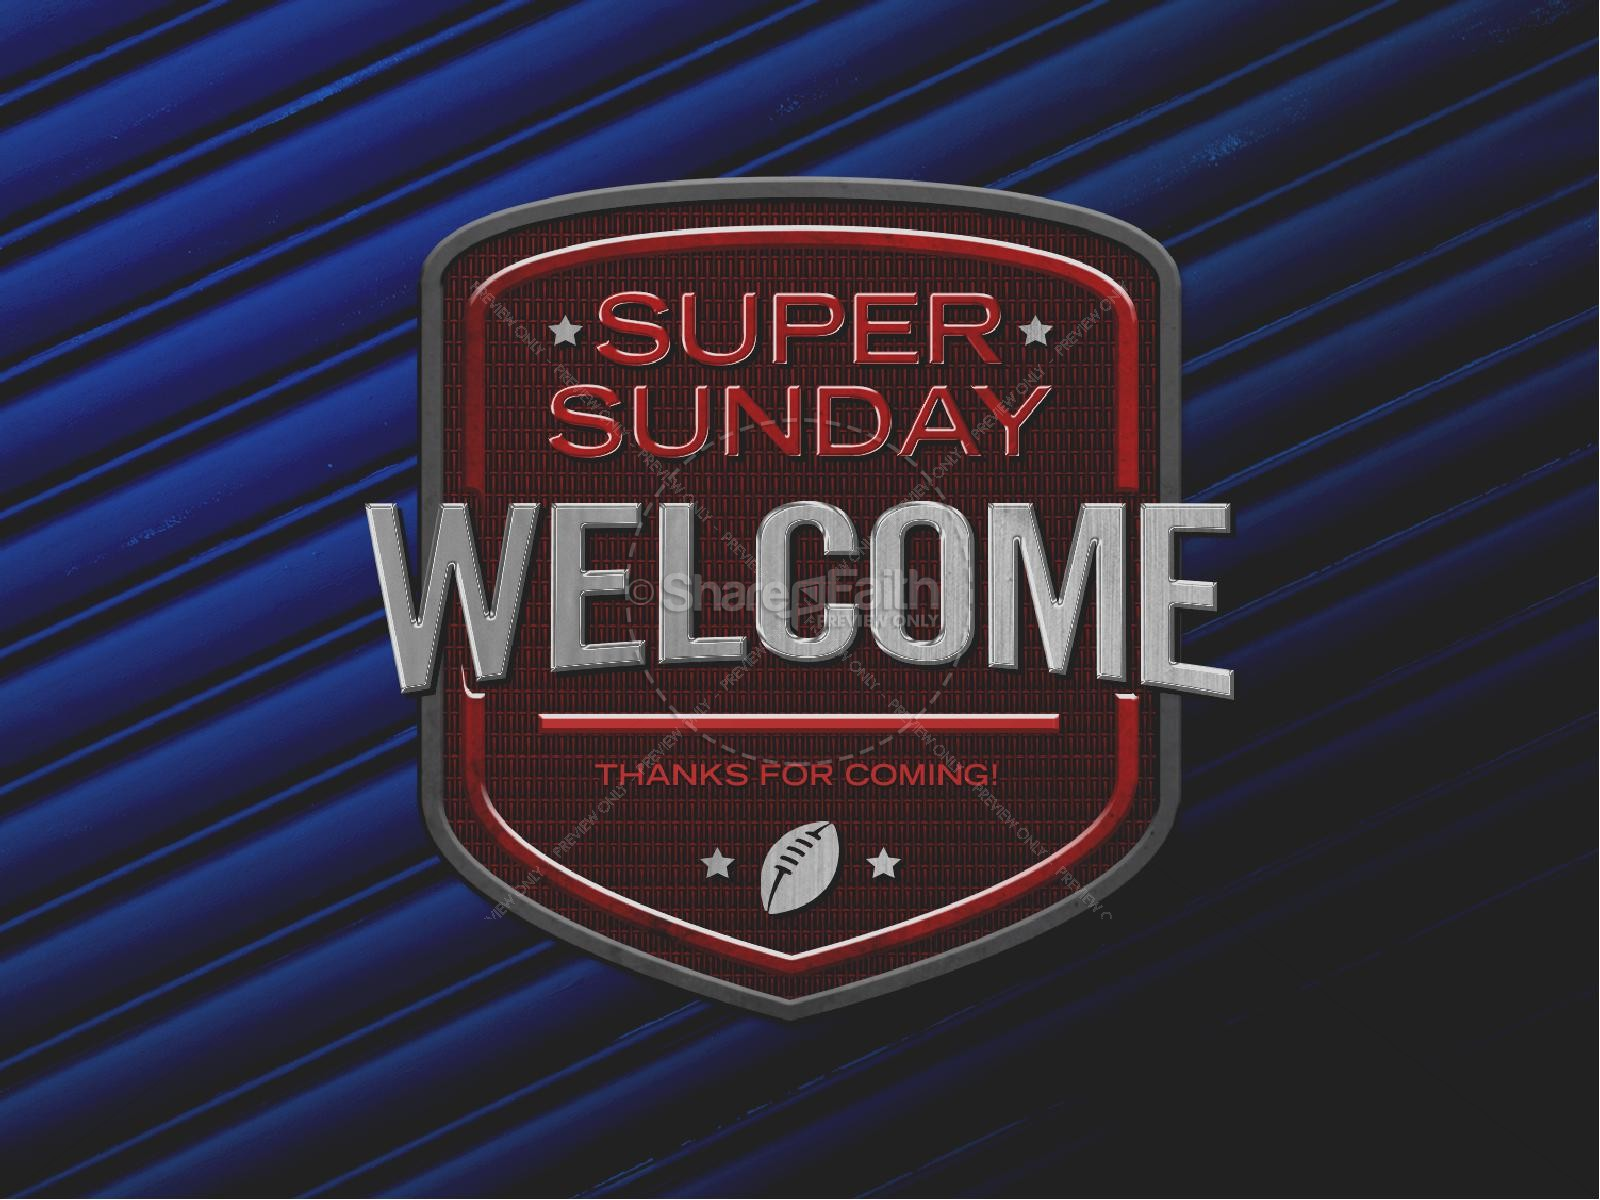 Super Sunday Blue Church PowerPoint | slide 2